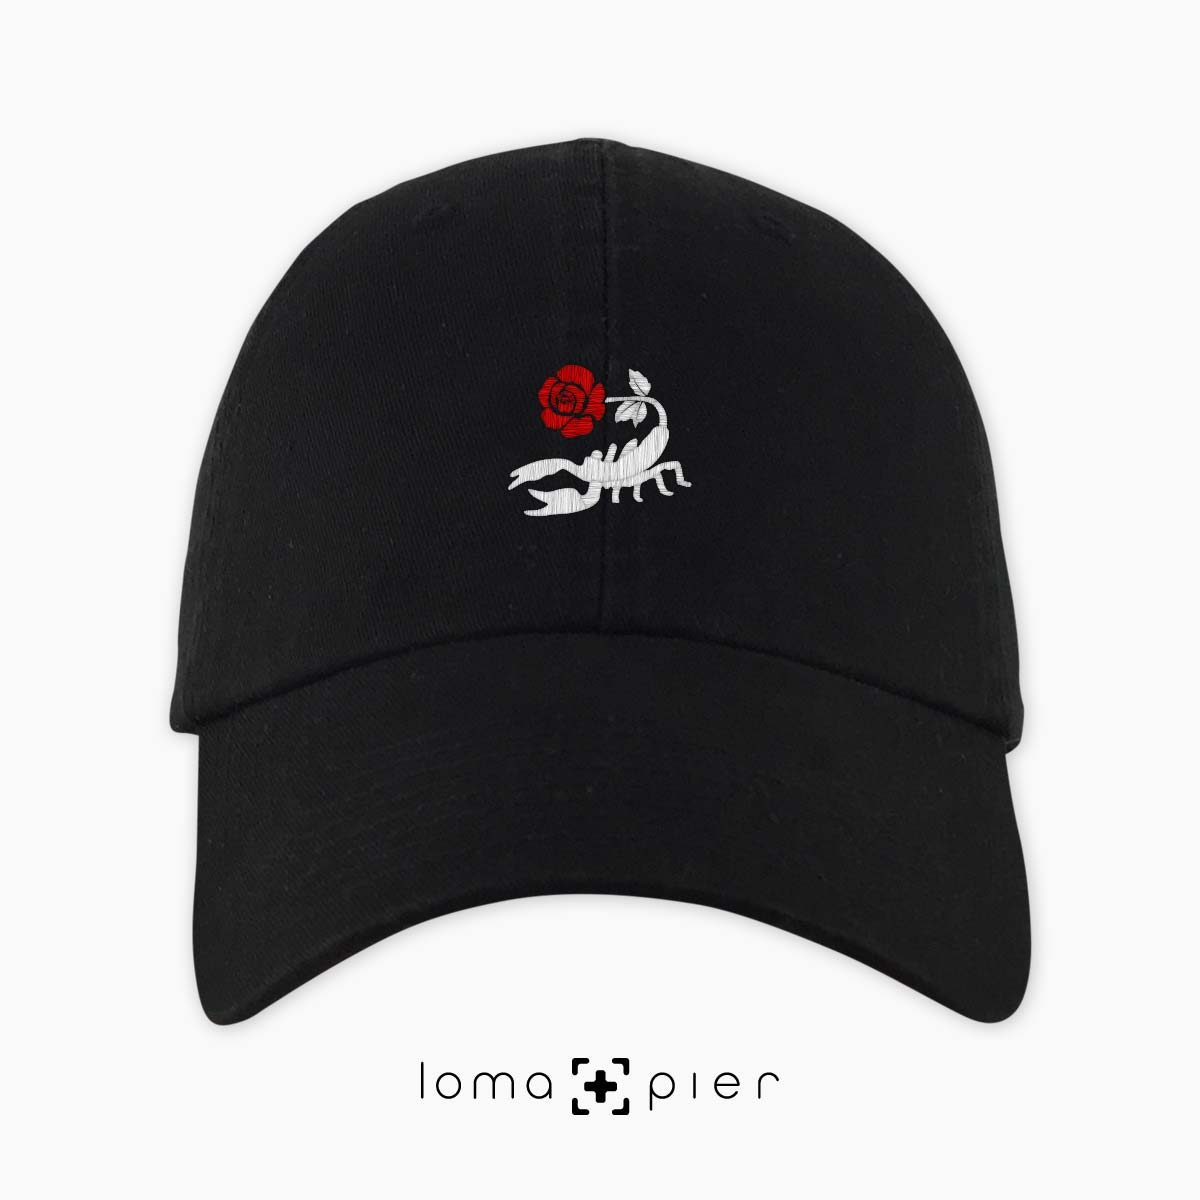 SCORPION ROSE icon embroidered on a black unstructured dad hat with red and white thread by loma+pier hat store made in the USA